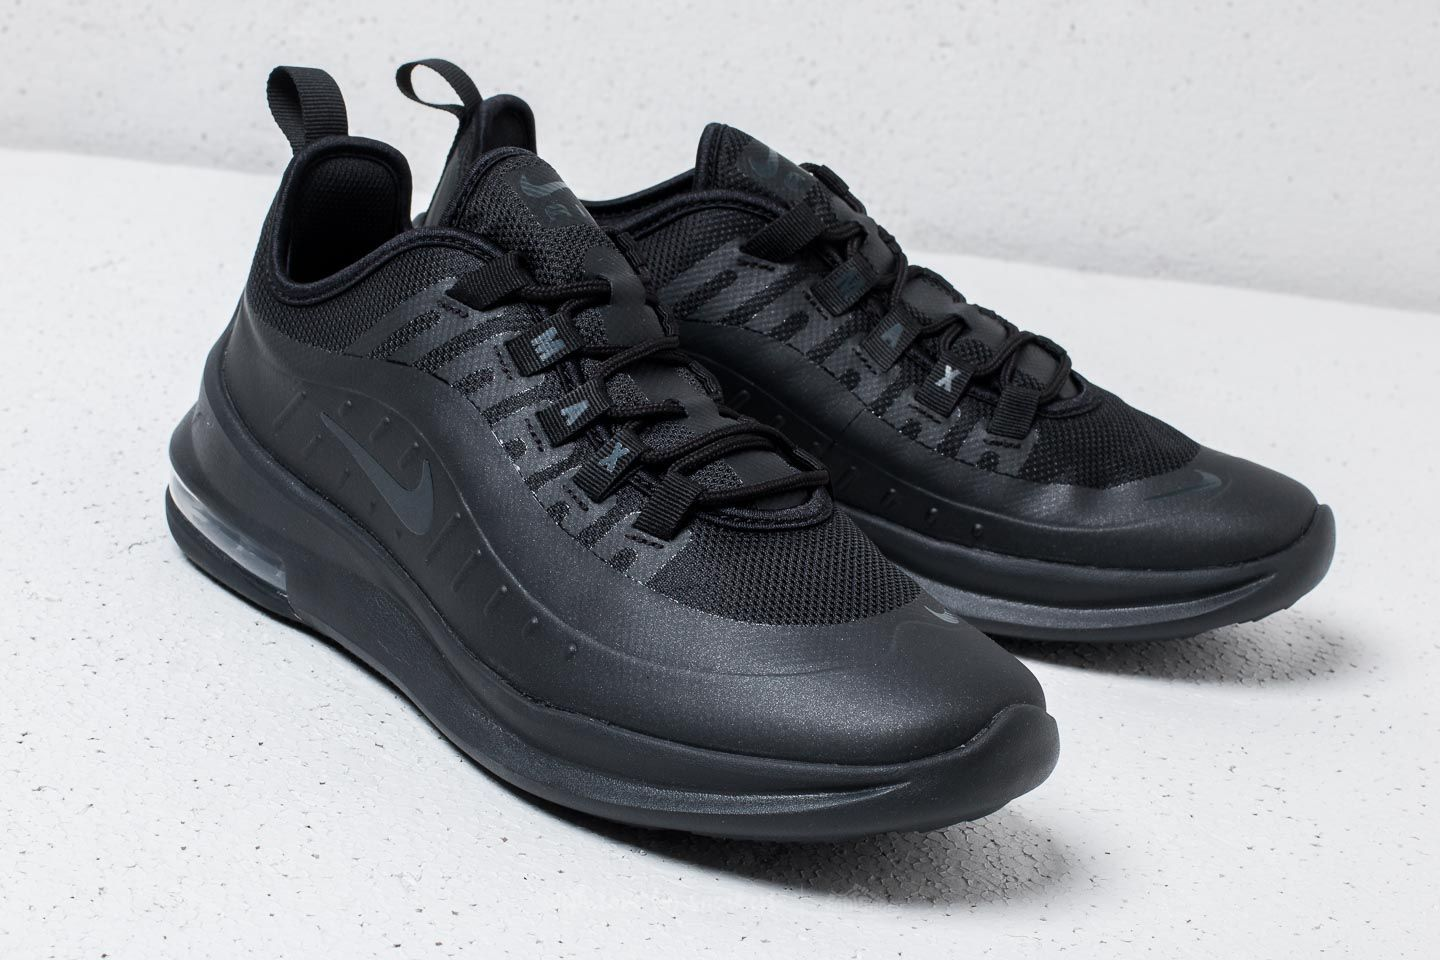 2bb6b4164eb3 Nike Air Max Axis (GS) Black  Anthracite-Black in 2019